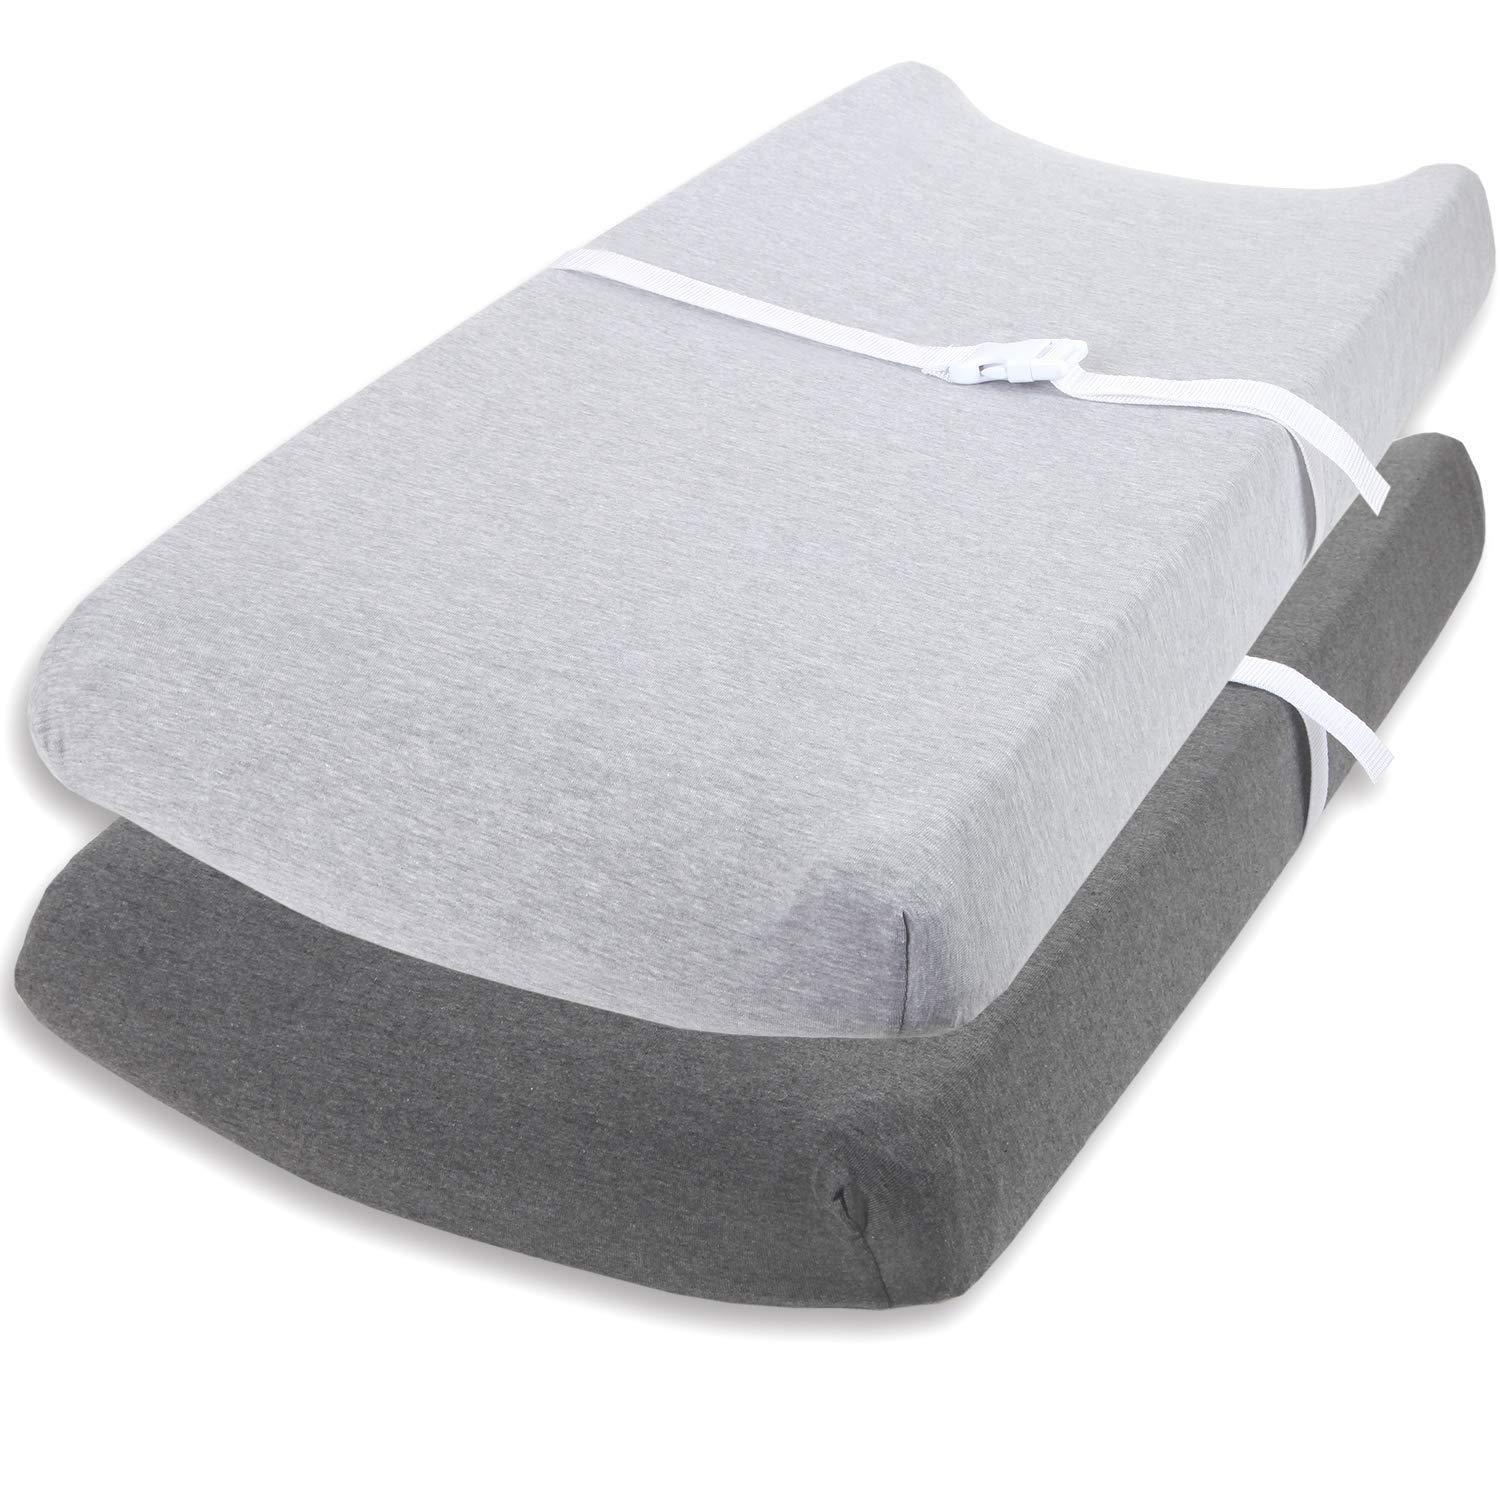 Changing Pad Cover Set by Cuddly Cubs | Ultra Soft Jersey Cotton Changing Table Cover Cradle Sheets 16x32 inches for Baby Girl and Boy | 2 Pack Heather Grey Change Table Sheets by Cuddly Cubs